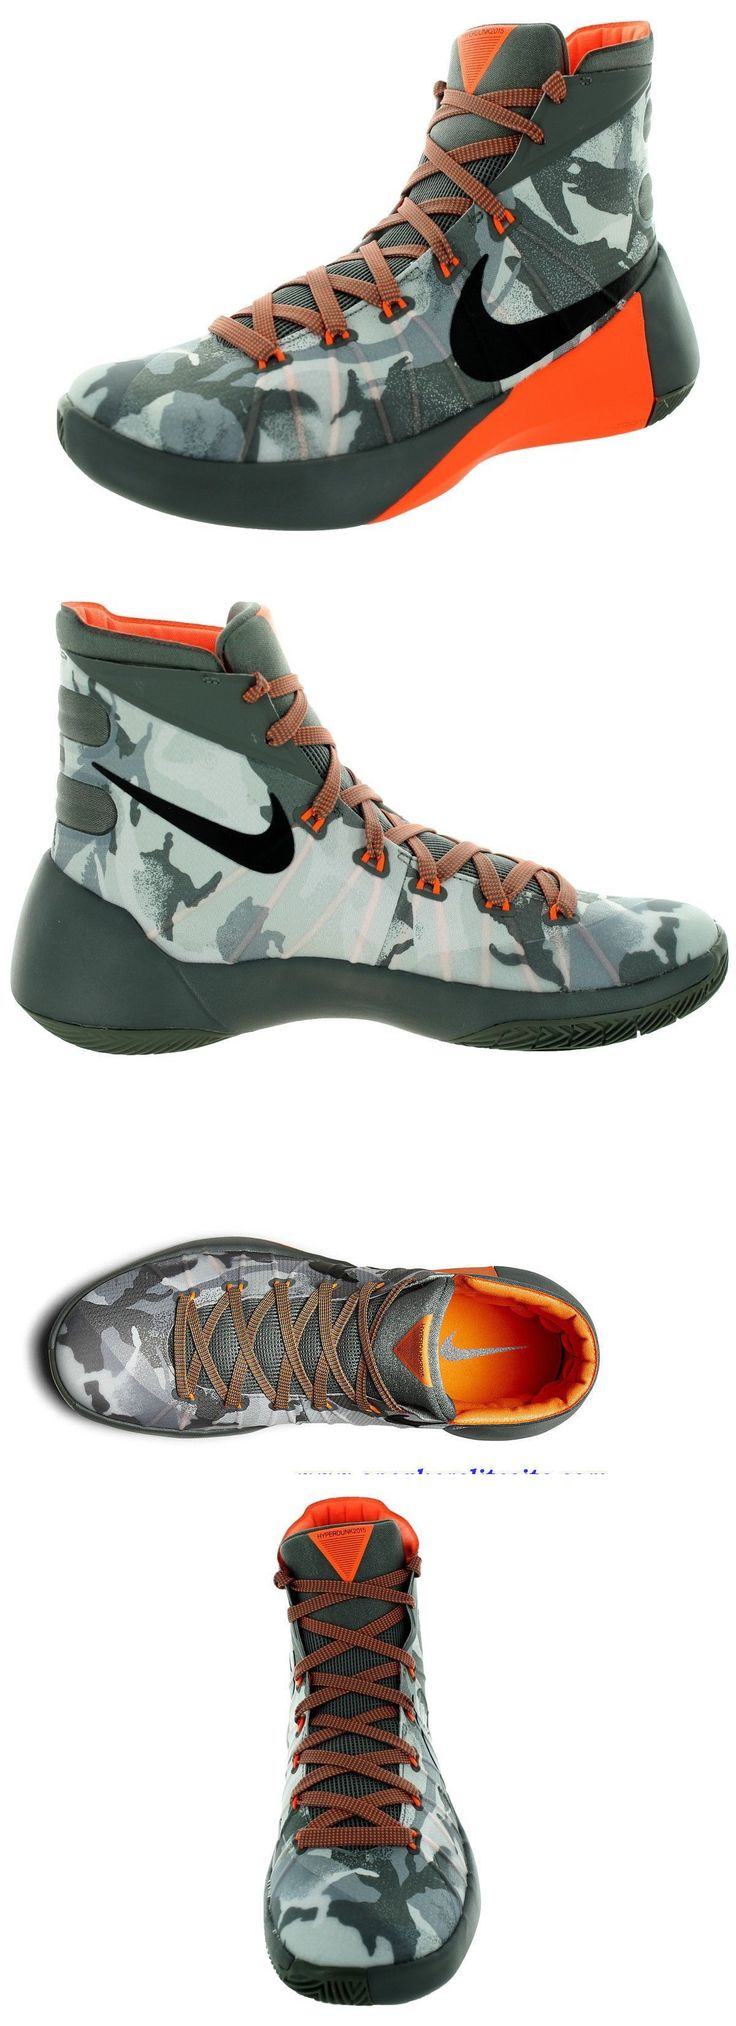 Basketball: Nib Nike 749567 001 Mens Hyperdunk 2015 Basketball Shoes Select Size $140 -> BUY IT NOW ONLY: $79.95 on eBay!